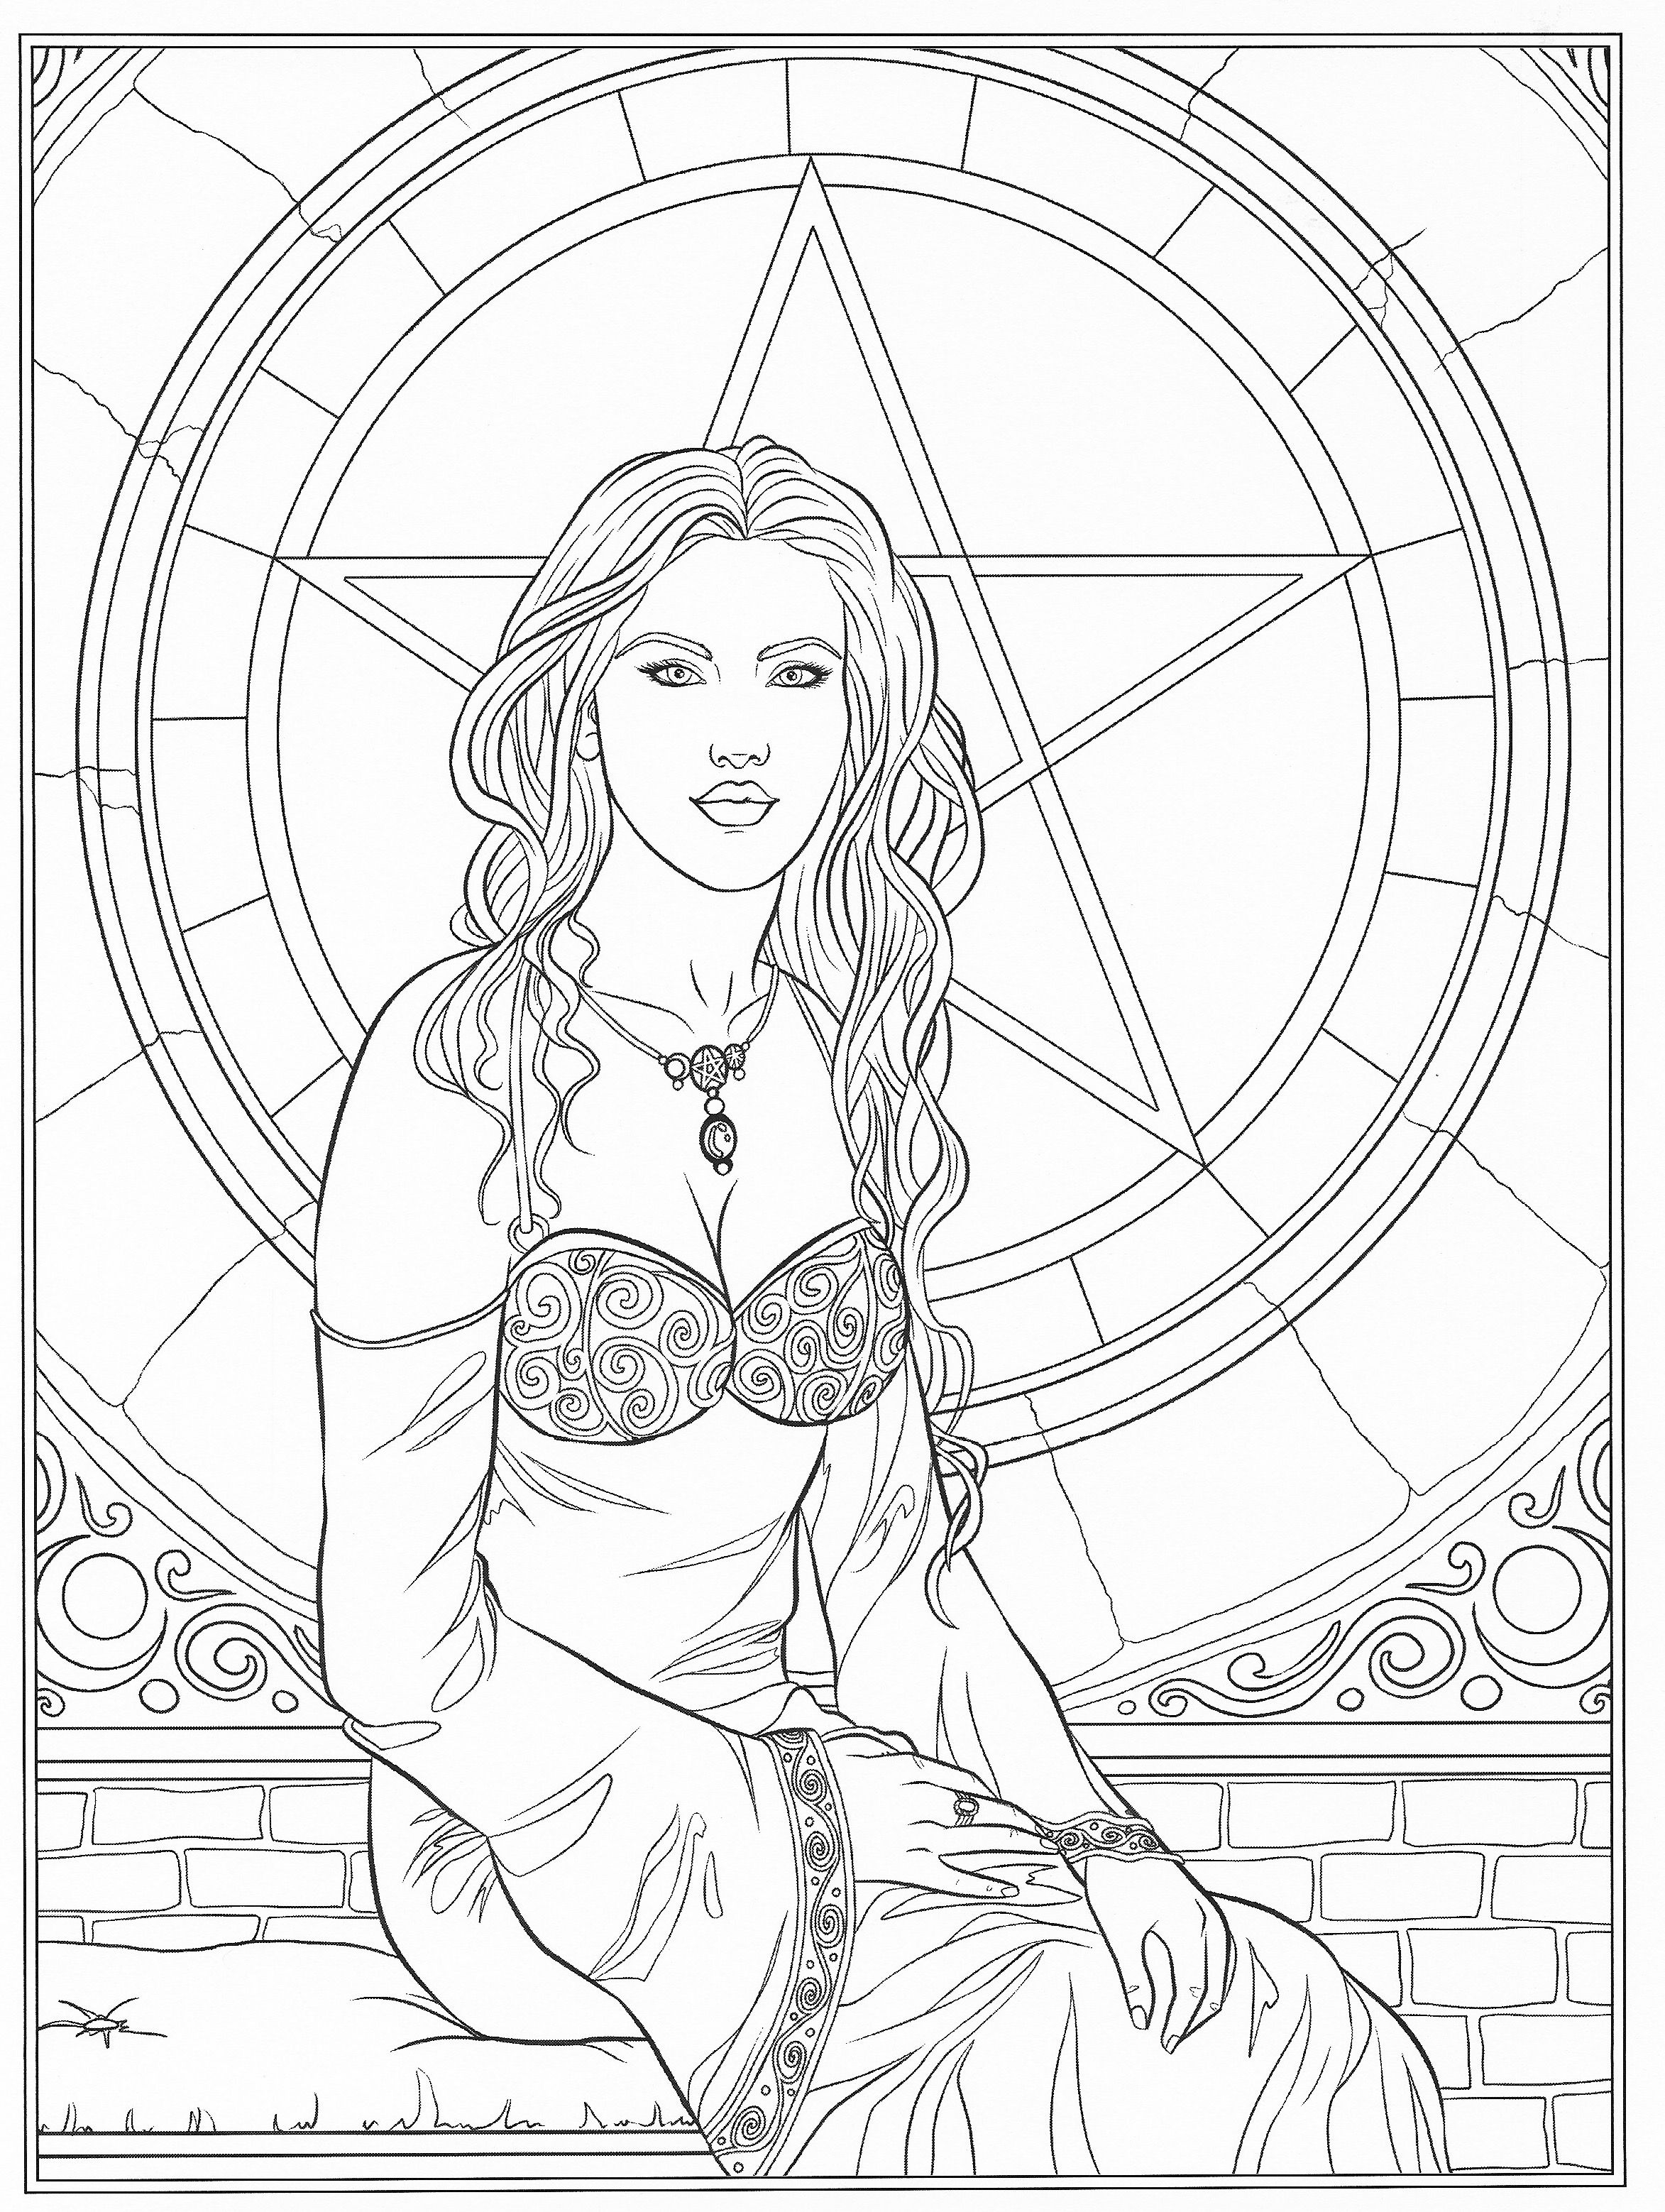 Adult Coloring - Goddess Coloring | Coloring pages, Adult ...